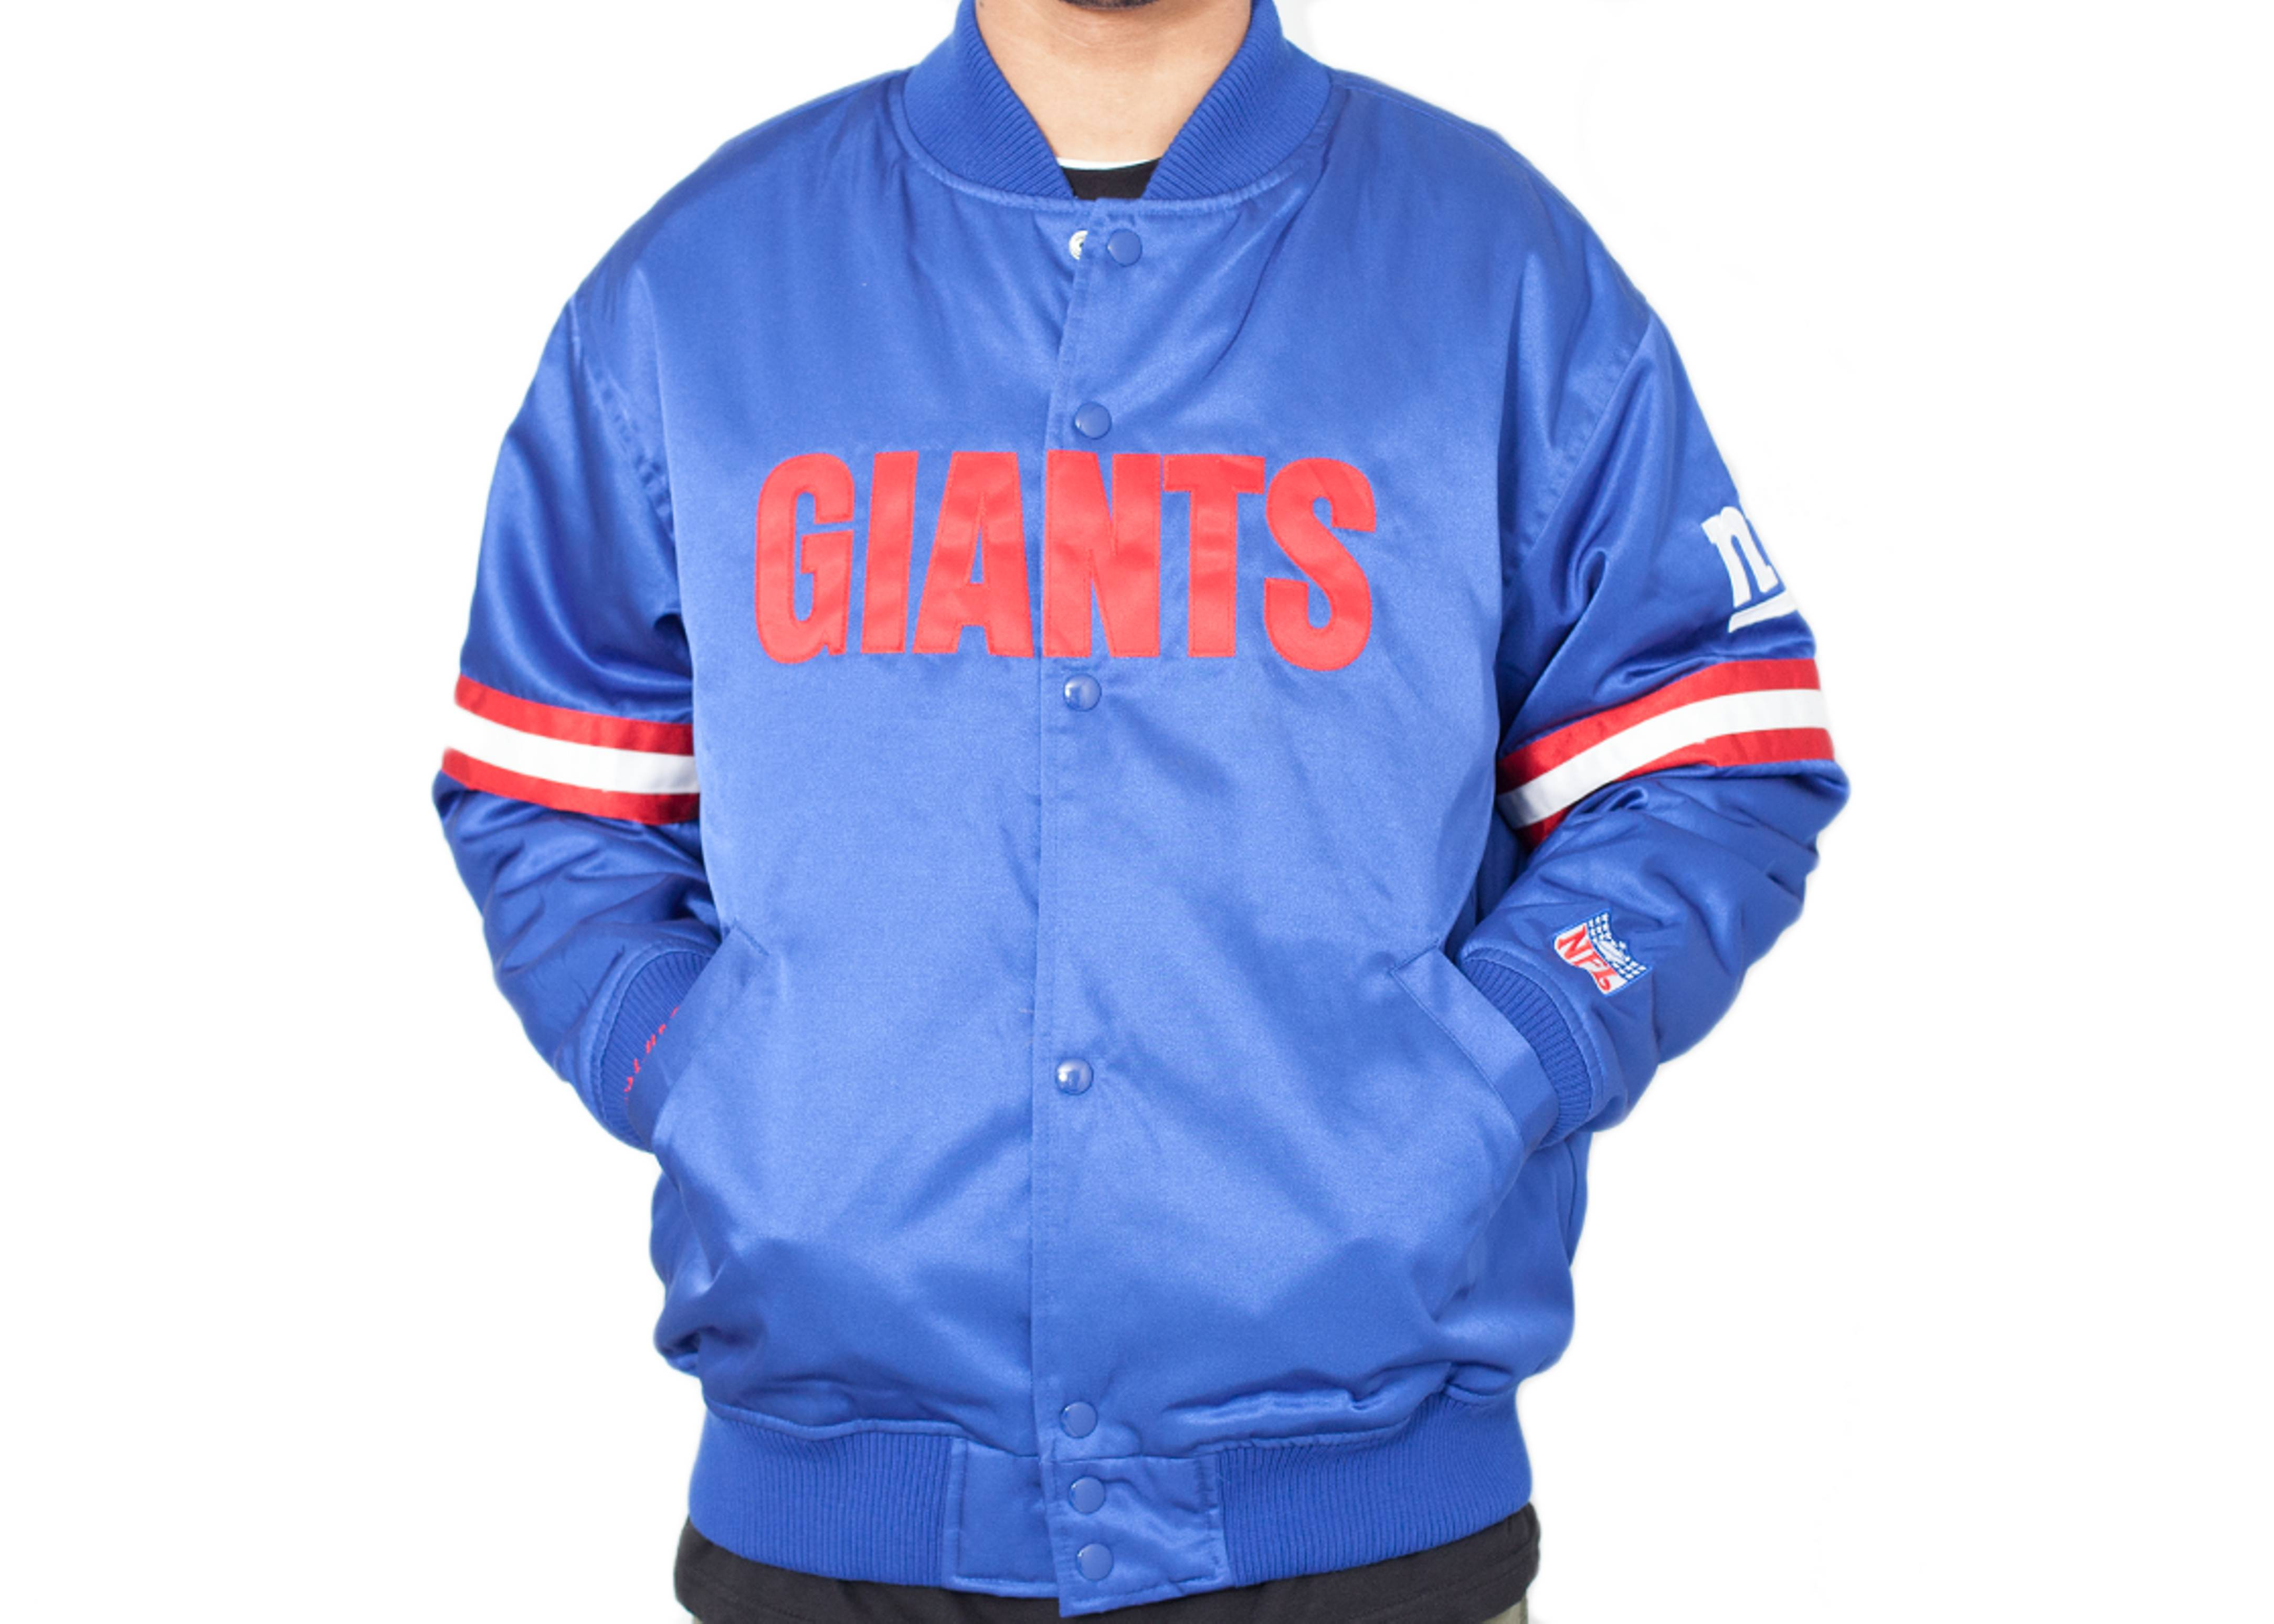 new york giants satin jacket